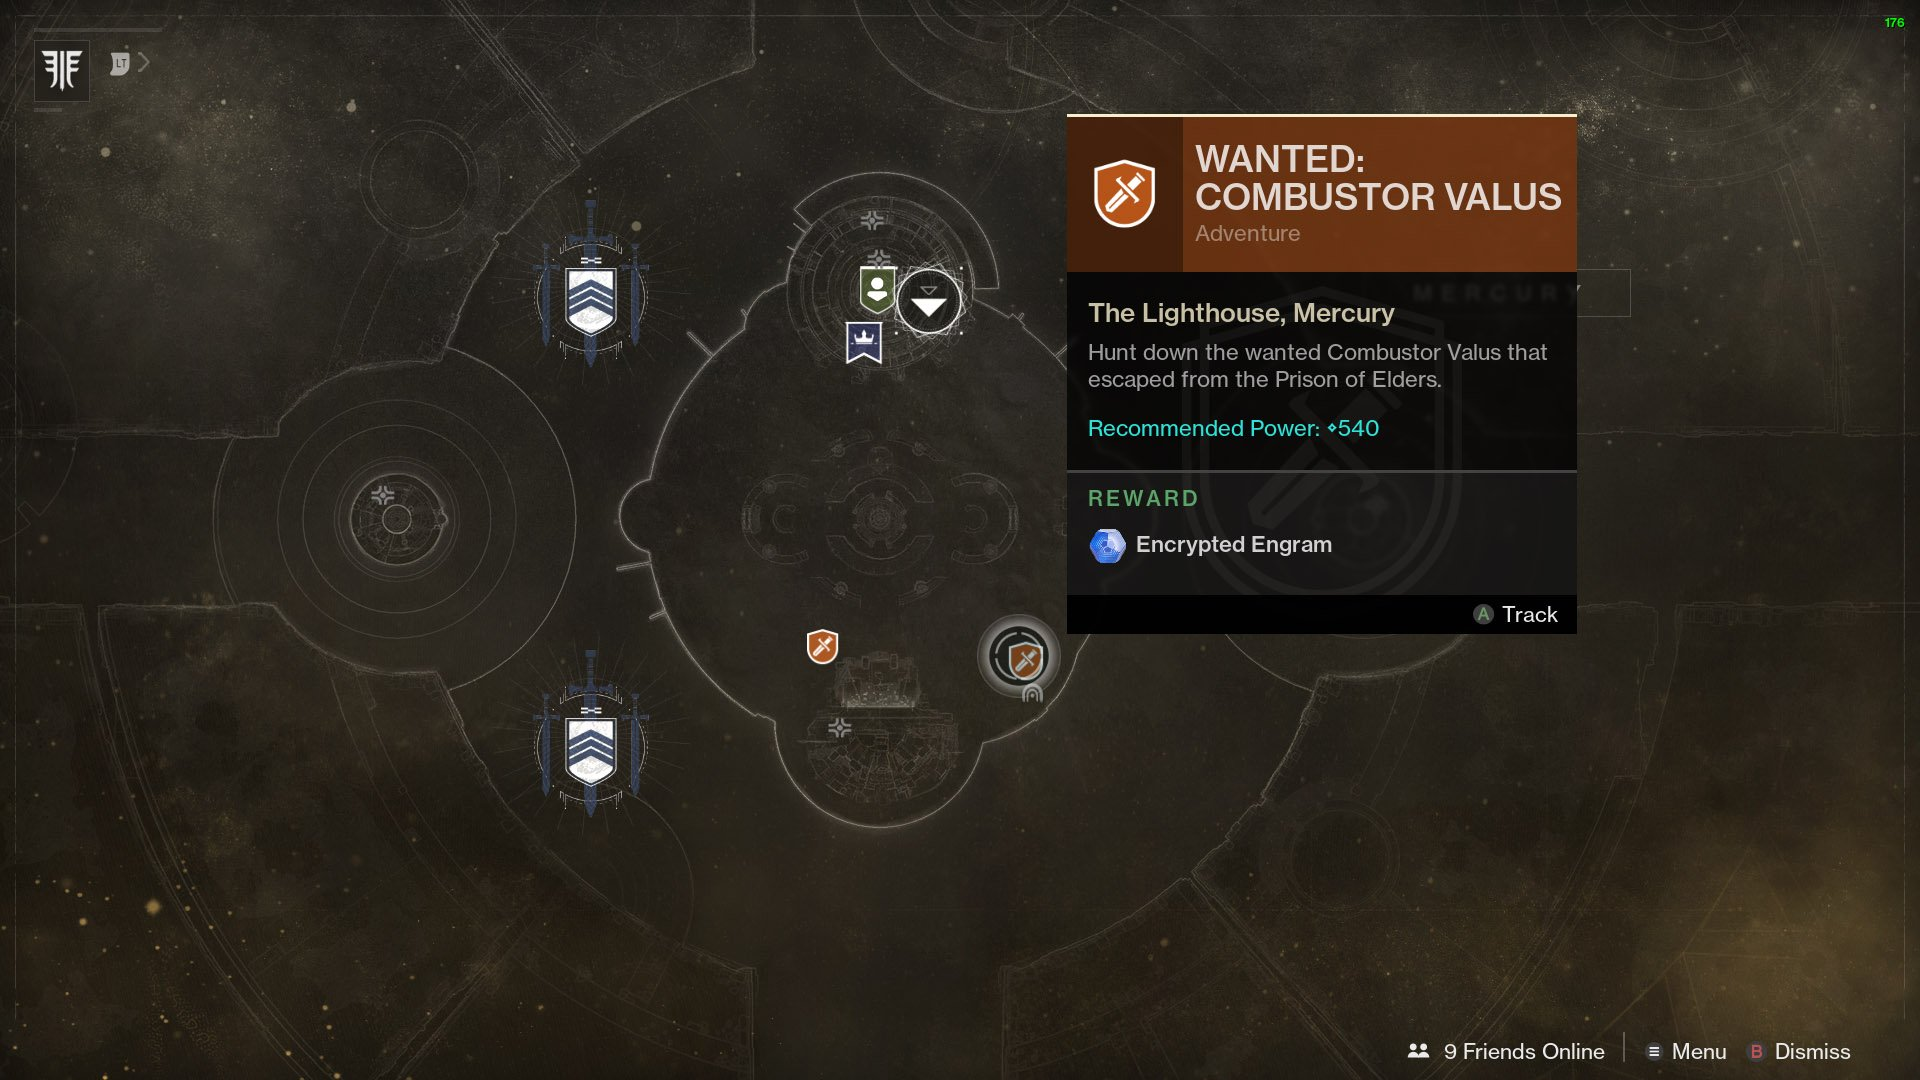 Destiny 2 Wanted Combustor Valus